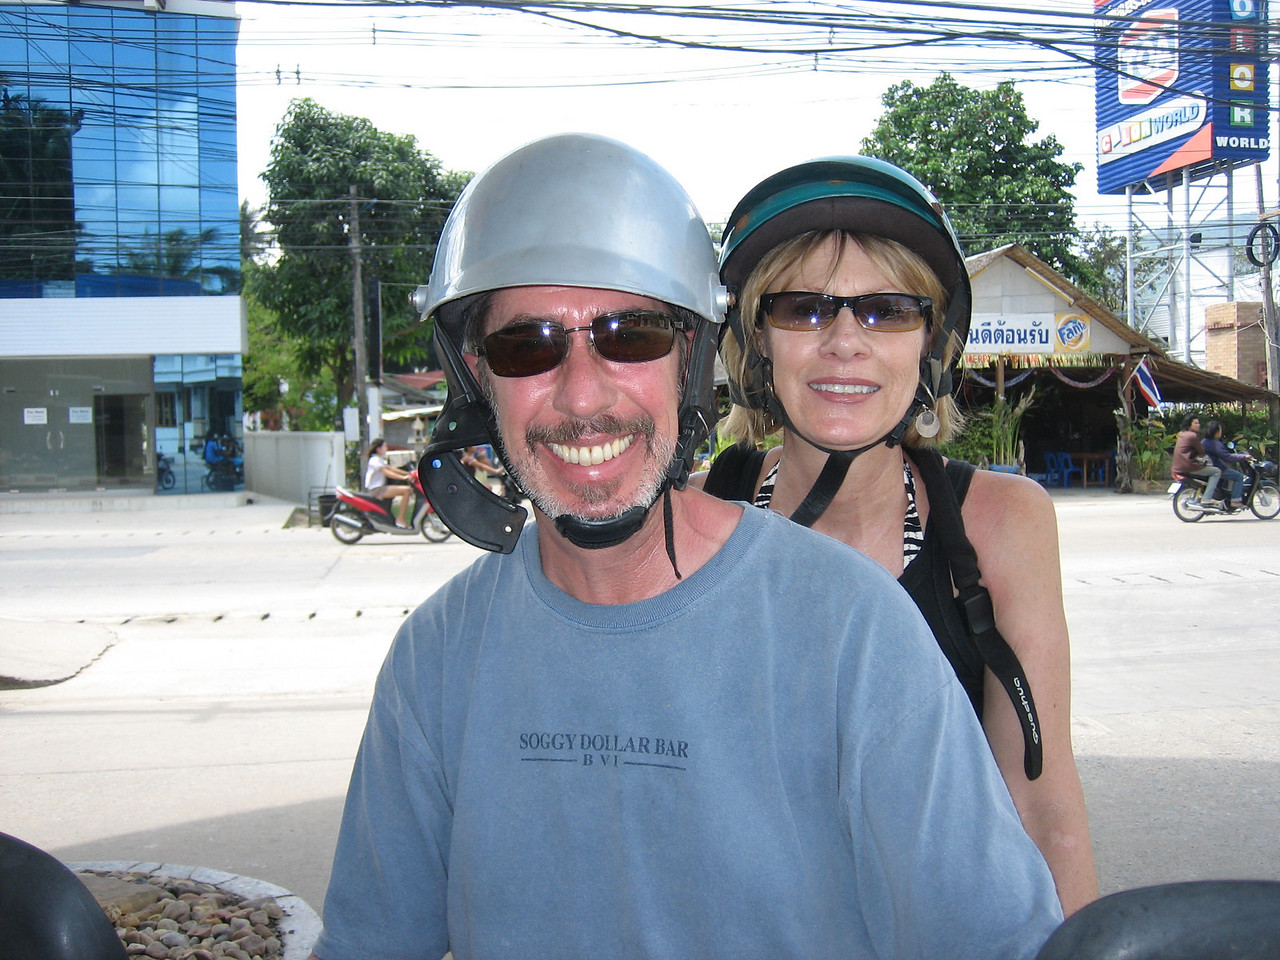 Easy Riders in Thailand